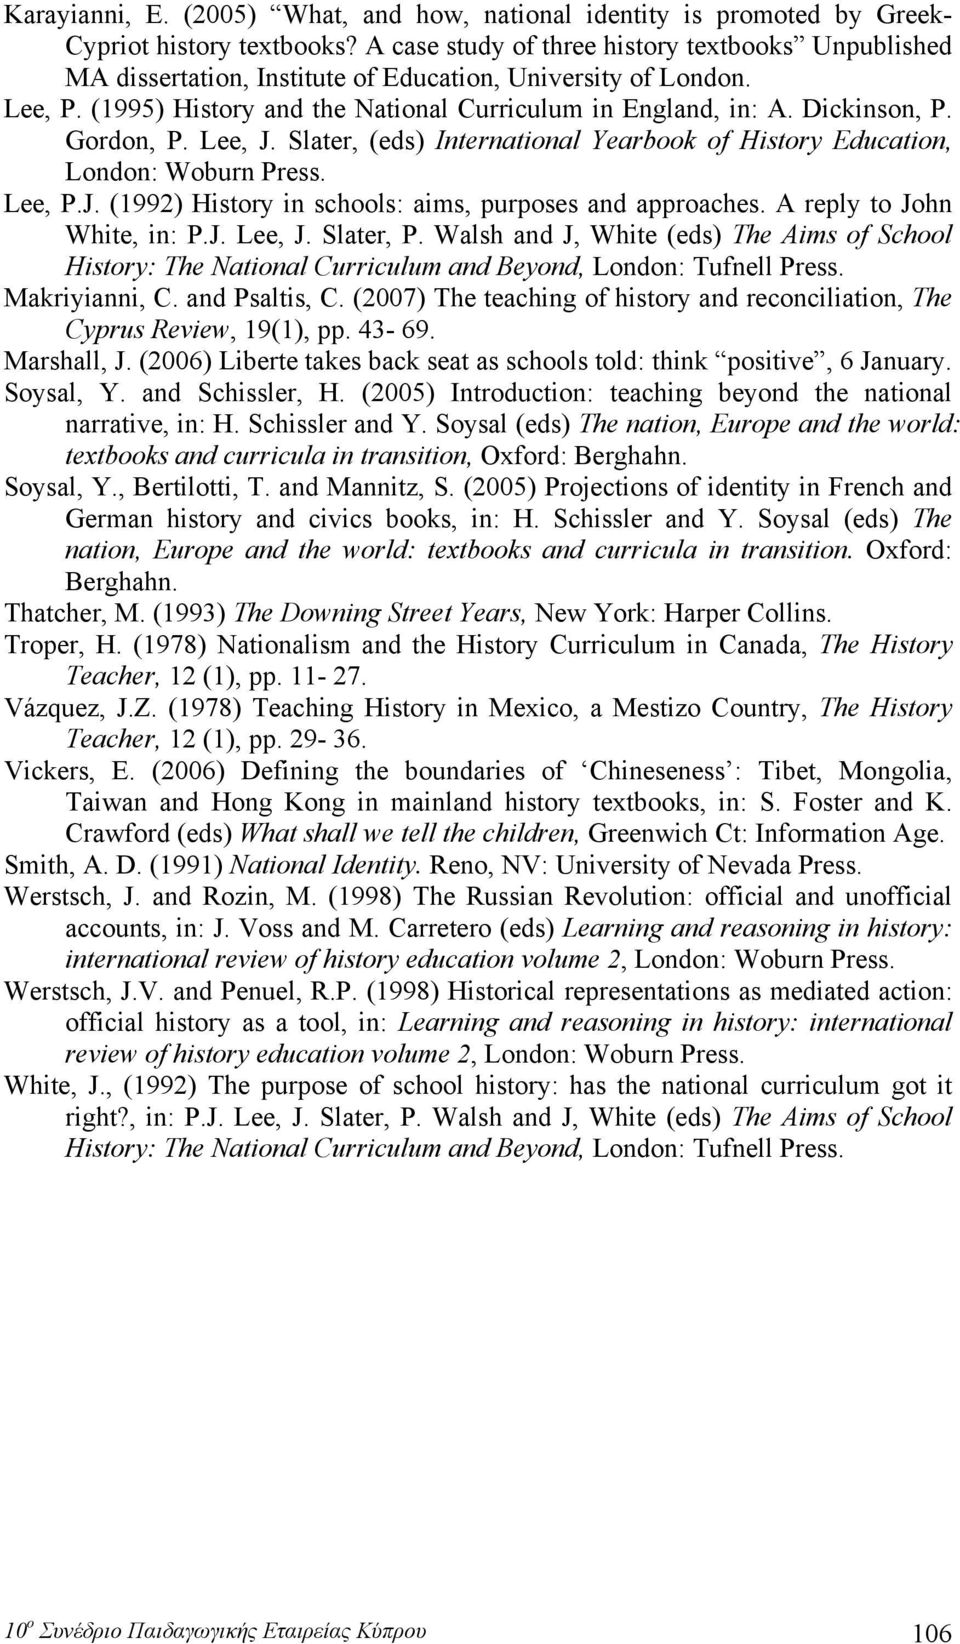 Gordon, P. Lee, J. Slater, (eds) International Yearbook of History Education, London: Woburn Press. Lee, P.J. (1992) History in schools: aims, purposes and approaches. A reply to John White, in: P.J. Lee, J. Slater, P.